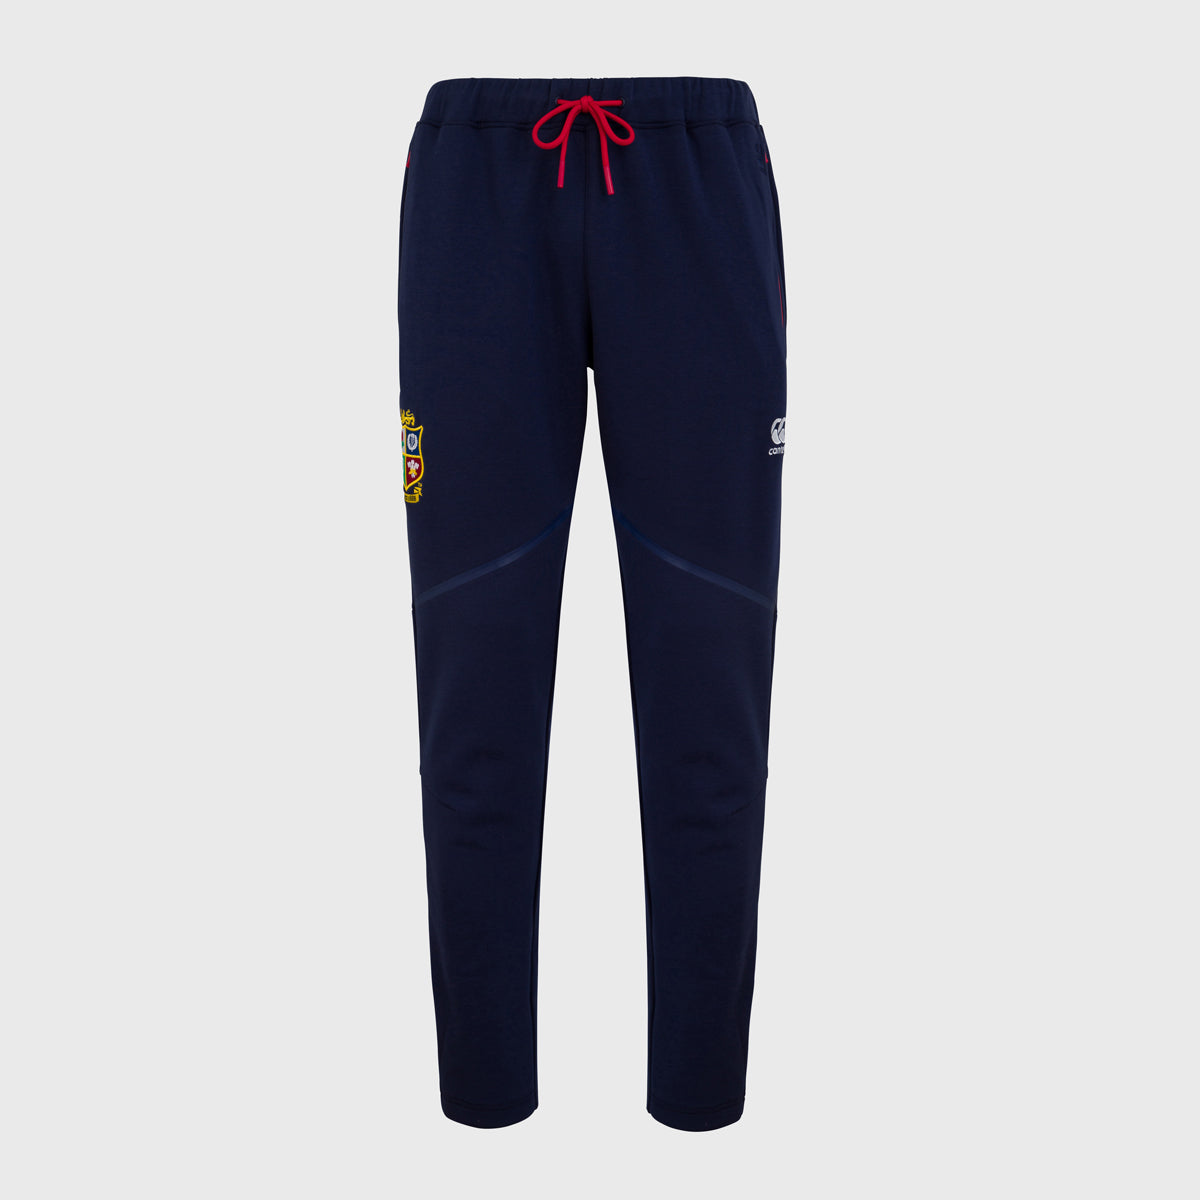 British & Irish Lions SA 2021 Men's Tech Fleece Pants Navy